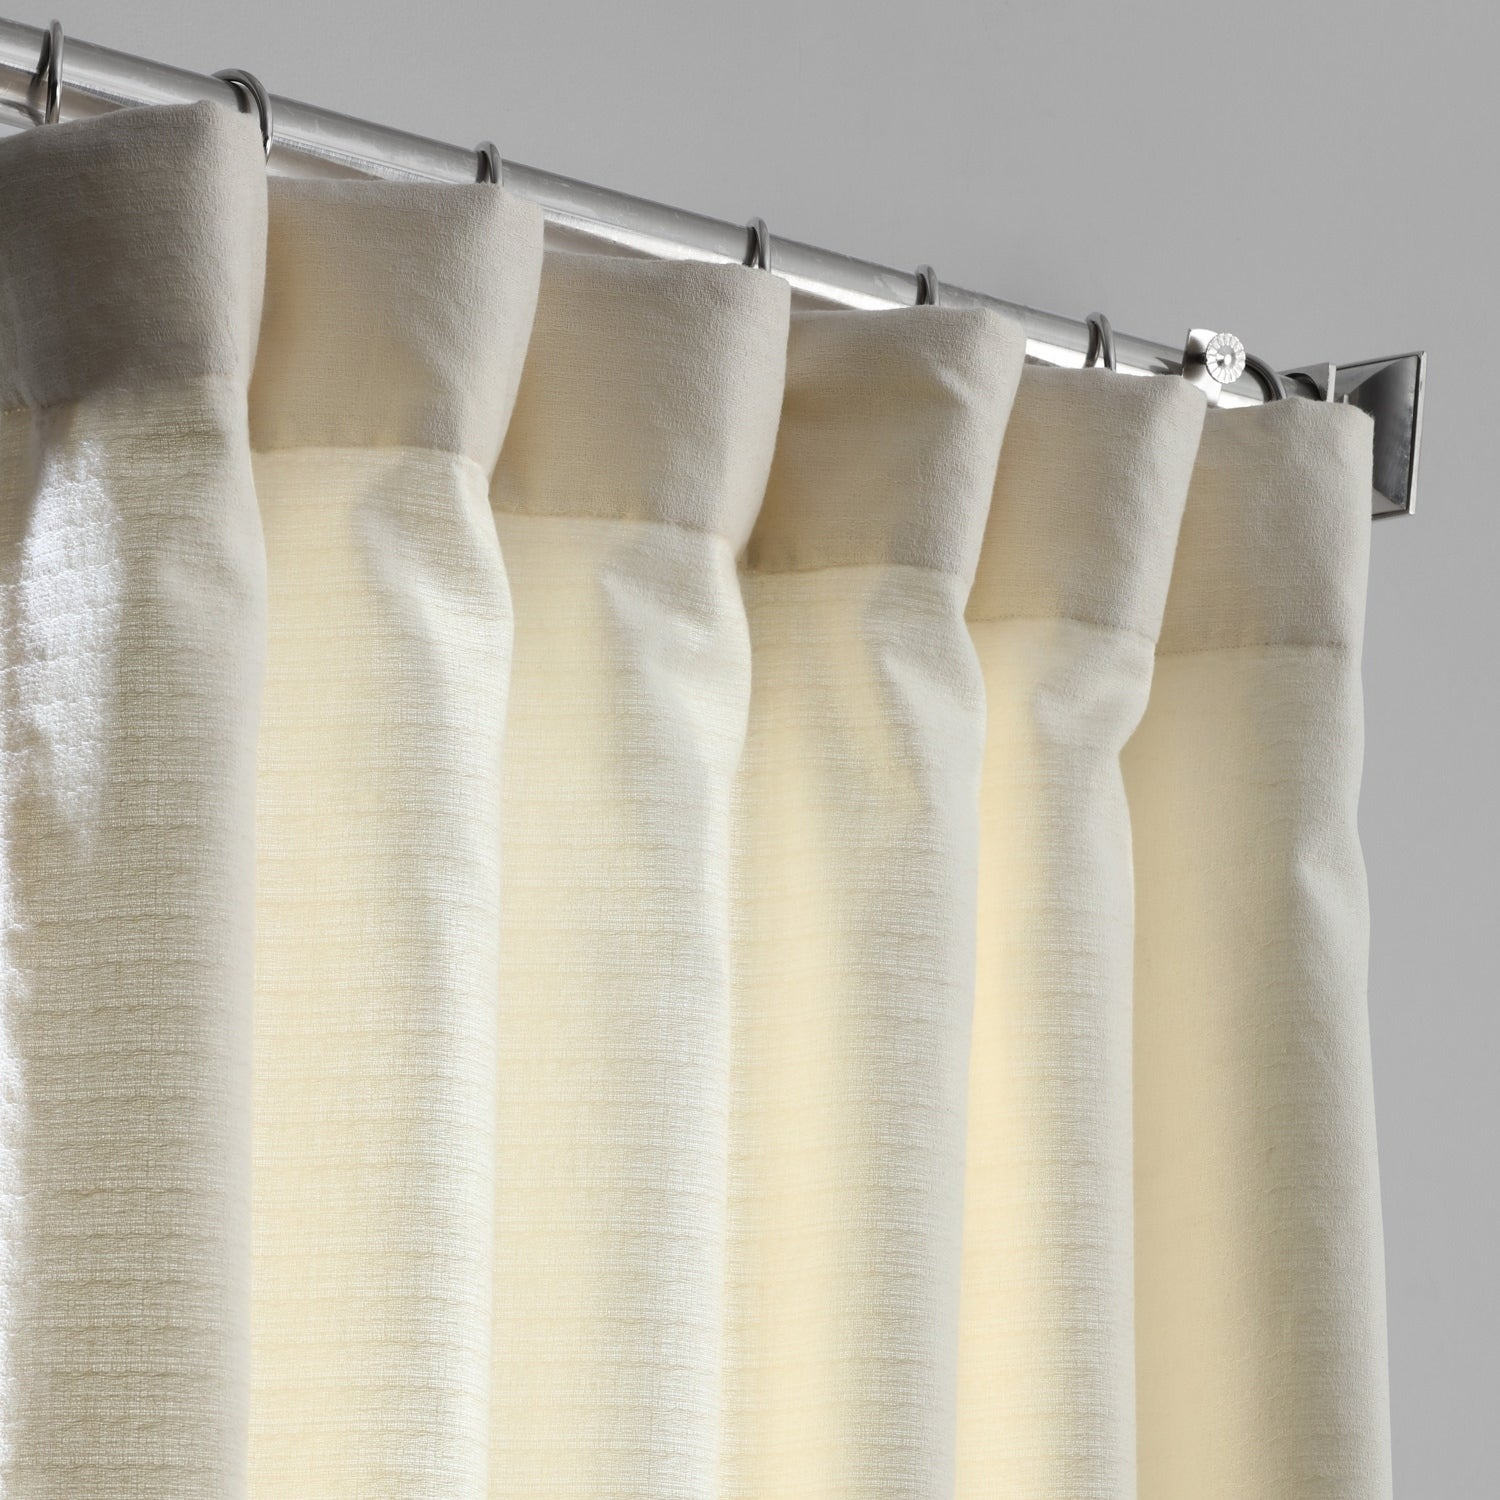 Shop Exclusive Fabrics Bark Weave Solid Cotton Curtain – On For Bark Weave Solid Cotton Curtains (View 12 of 20)